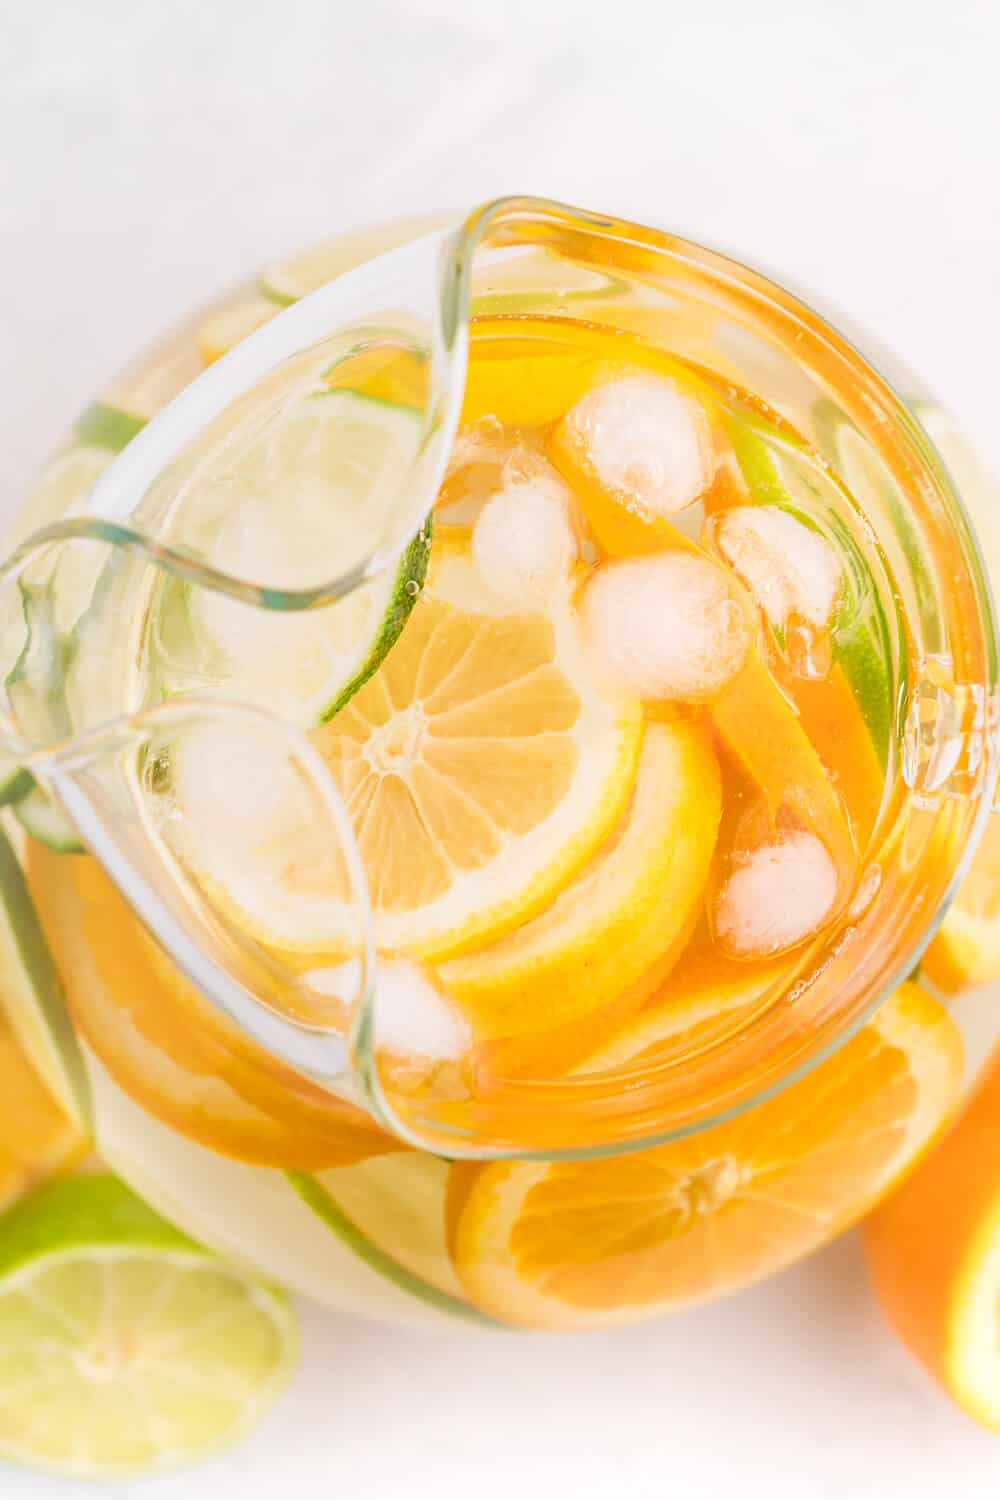 Citrus Bliss Infused Water - This refreshing infused water is the perfect way to amp up plain ol' water. Fresh lemon, lime and orange slices help you stay hydrated and healthy!